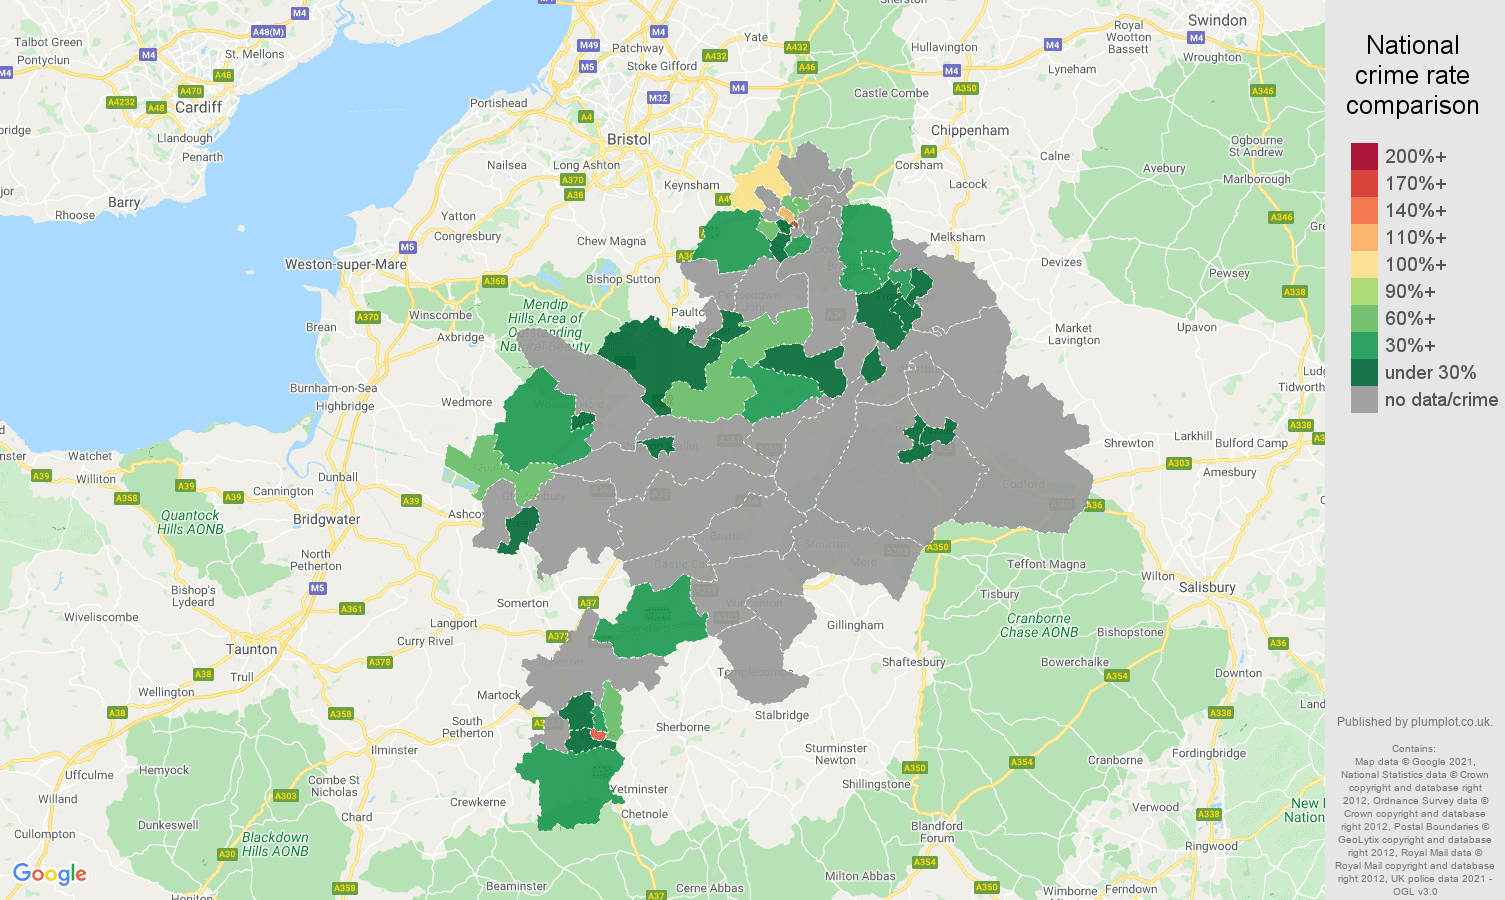 Bath theft from the person crime rate comparison map